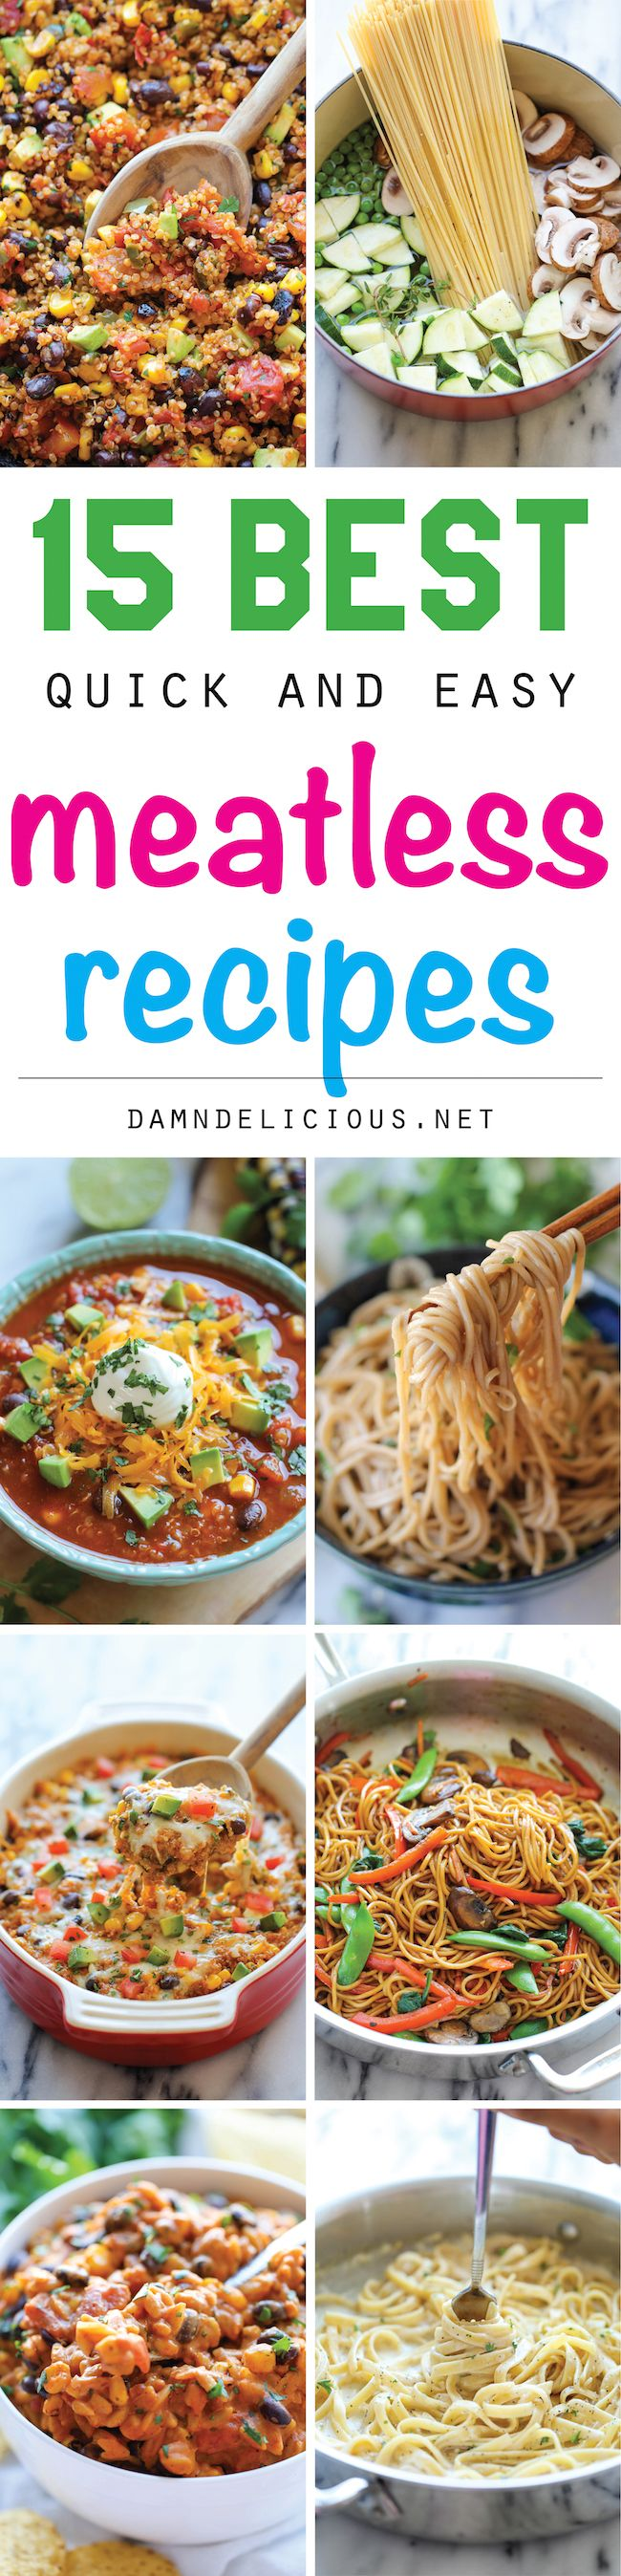 15 Best Quick and Easy Meatless Recipes - Easy, budget-friendly recipes packed with tons of veggies and protein. #vegetarian #easy #recipe #healthy #recipes